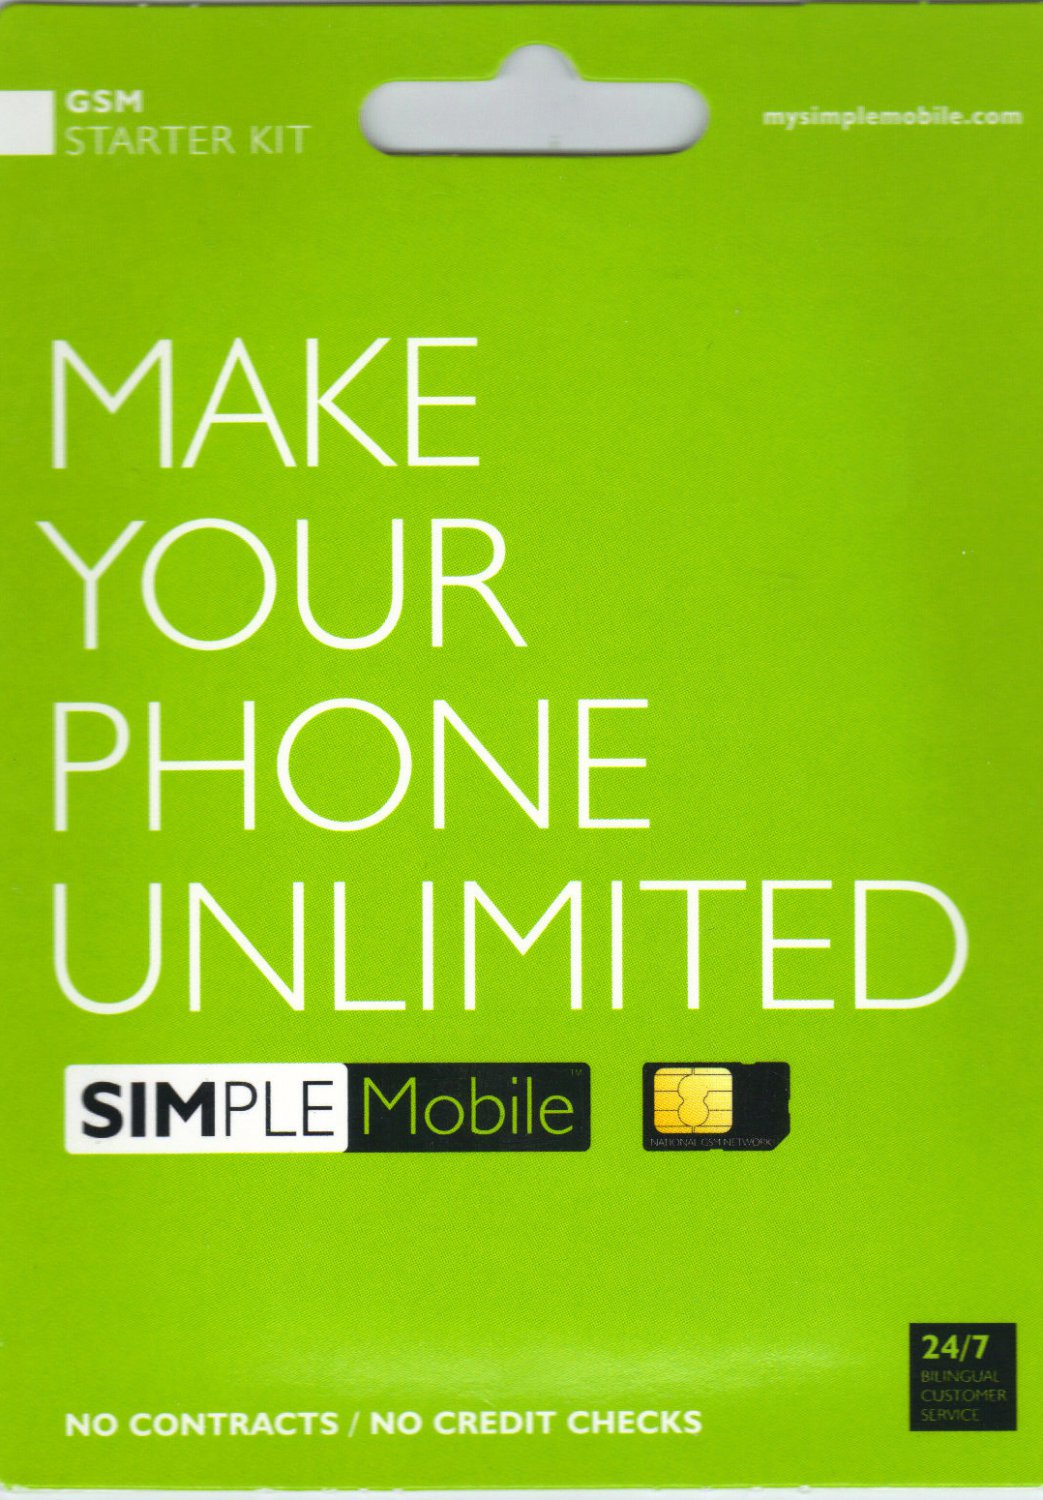 Prepaid Sim Card for unlocked iPhone 2, 3, 3g, and 3gs (Simple Mobile)